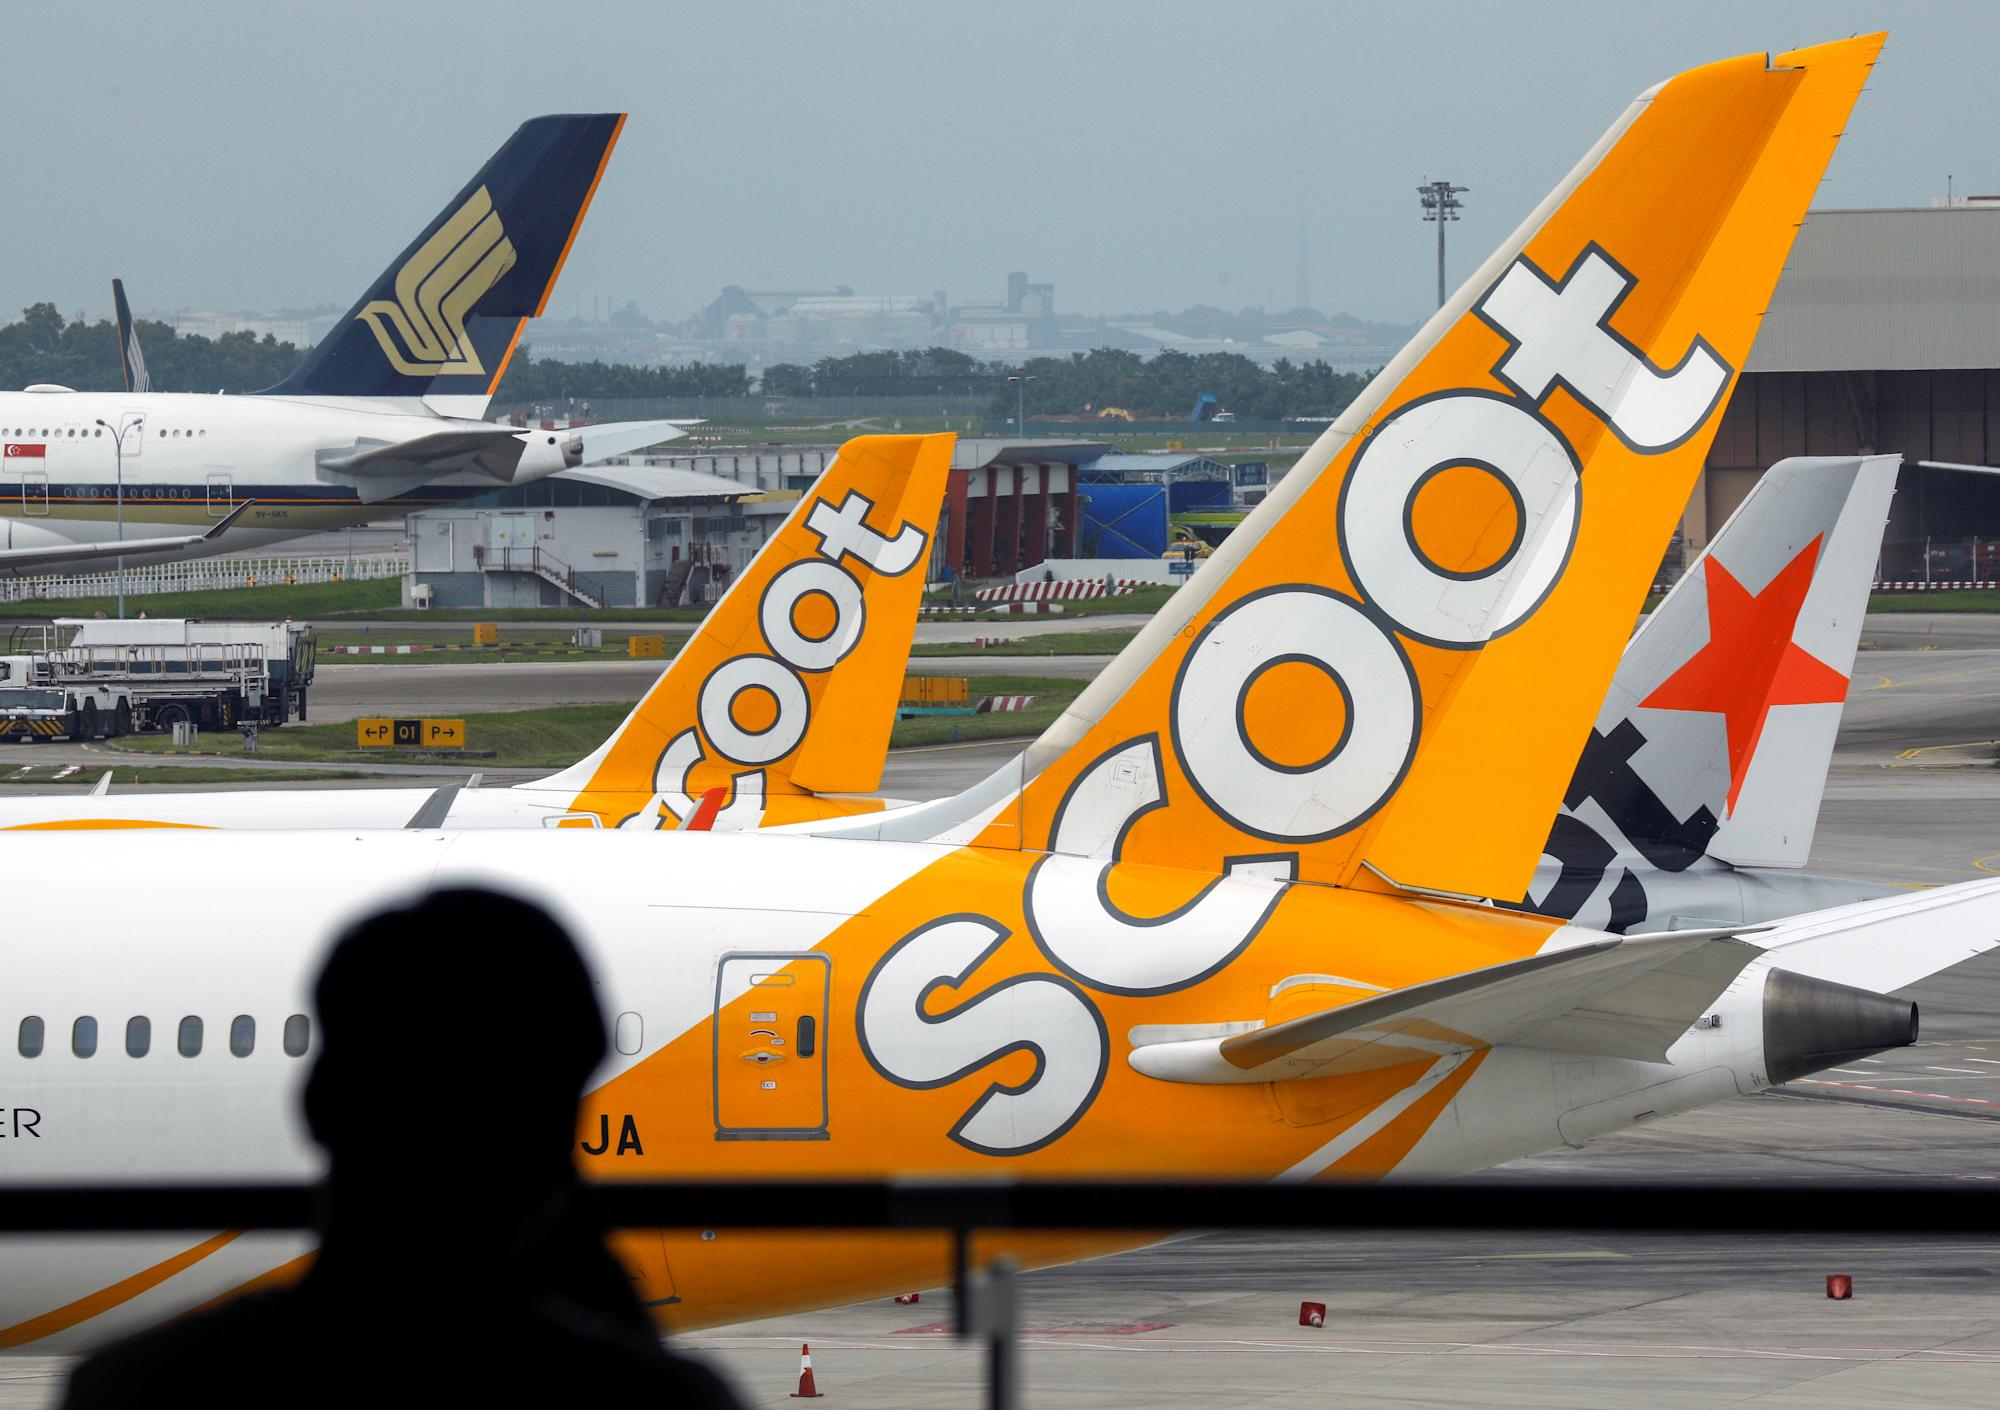 Scoot barred from landing flights from Singapore in Hong Kong for 2 weeks